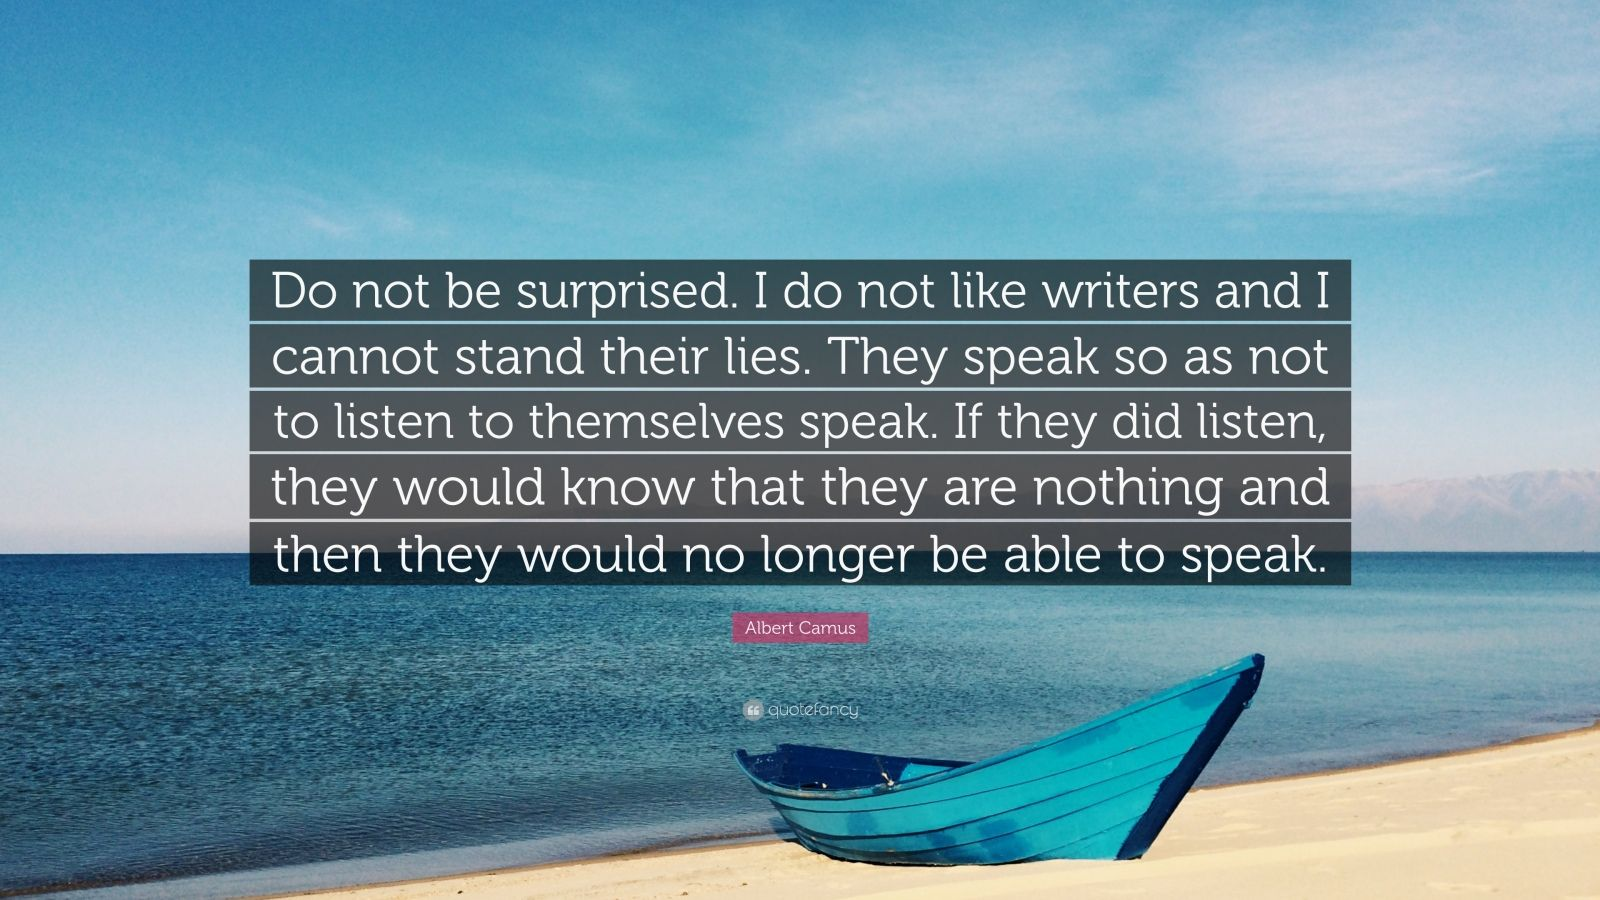 """Albert Camus Quote: """"Do not be surprised. I do not like writers and I cannot stand their lies. They speak so as not to listen to themselves speak. If they did listen, they would know that they are nothing and then they would no longer be able to speak."""""""